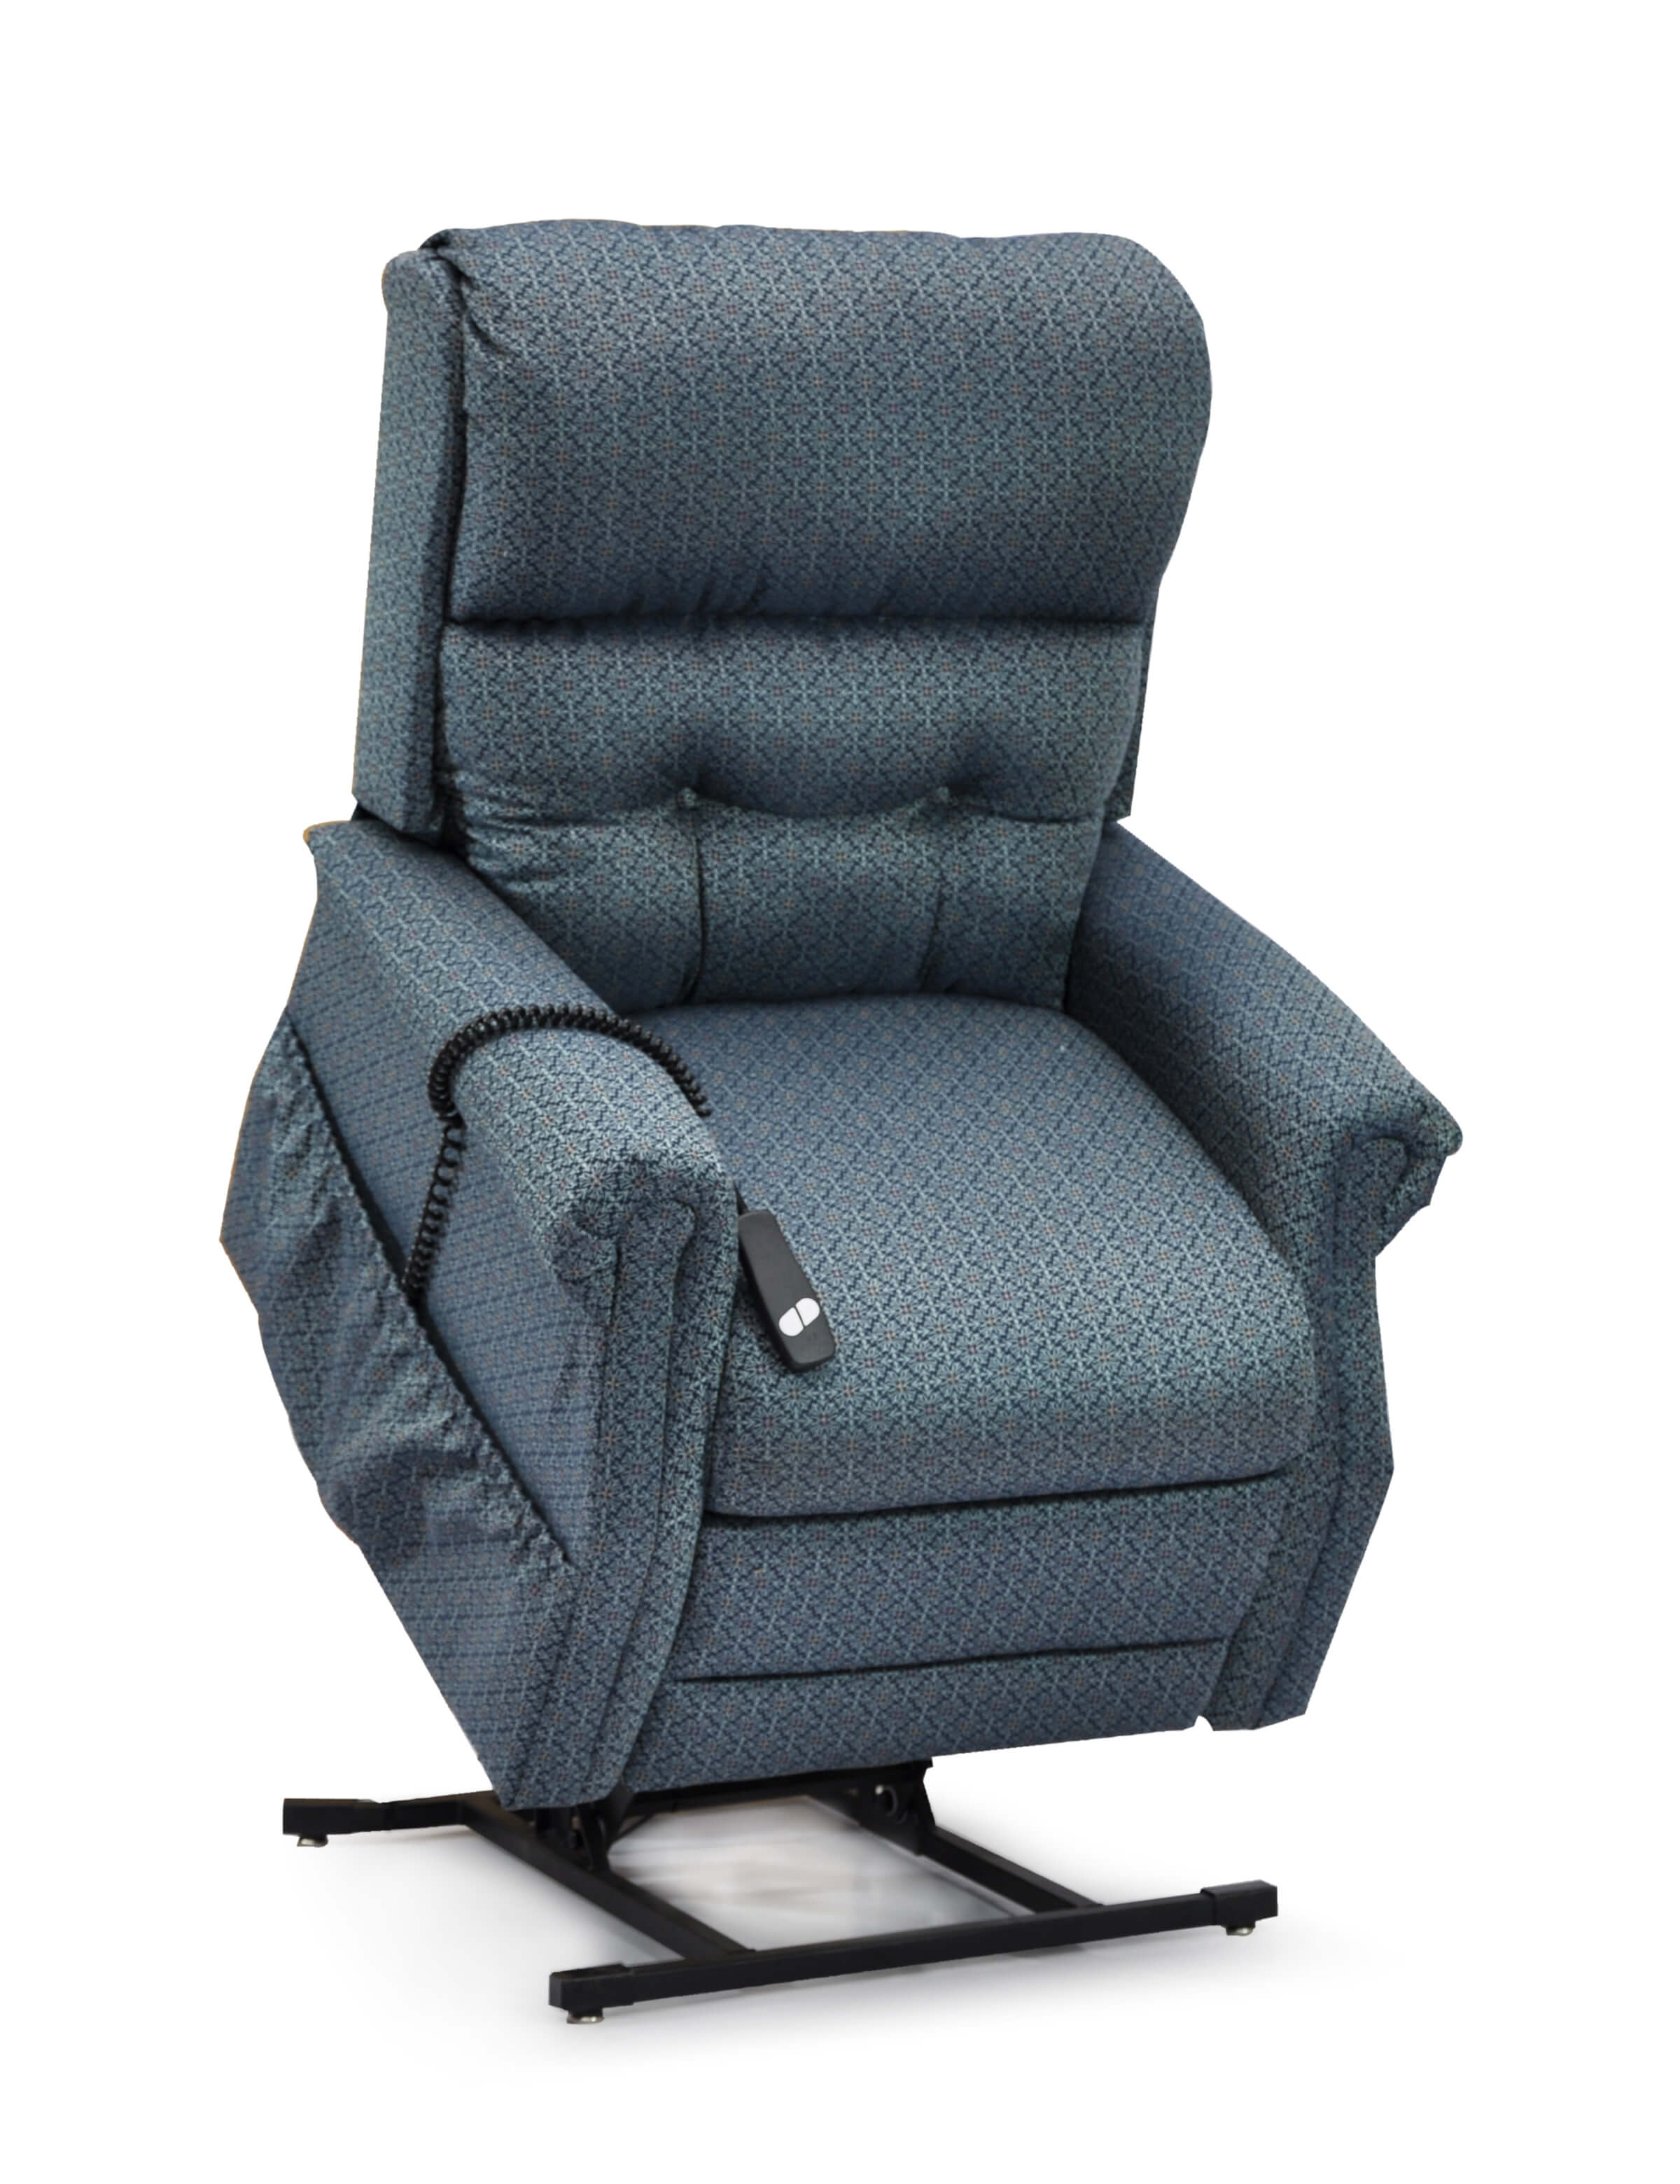 Med Lift Chairs 1170 Charlotte Series Two Way Recline Lift Chair By Med